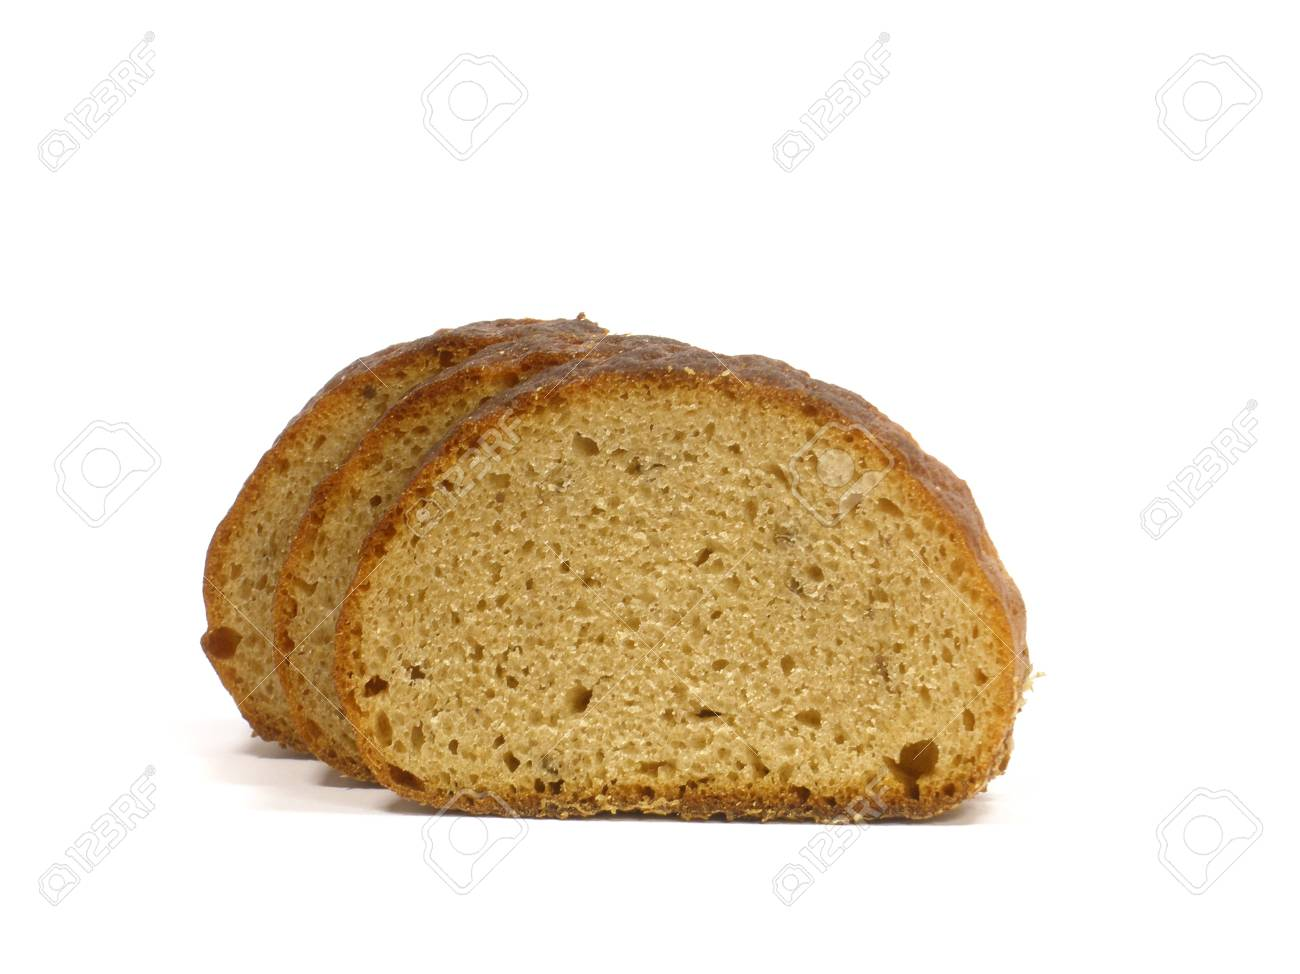 Bread slices on the white isolate background Stock Photo - 8382553